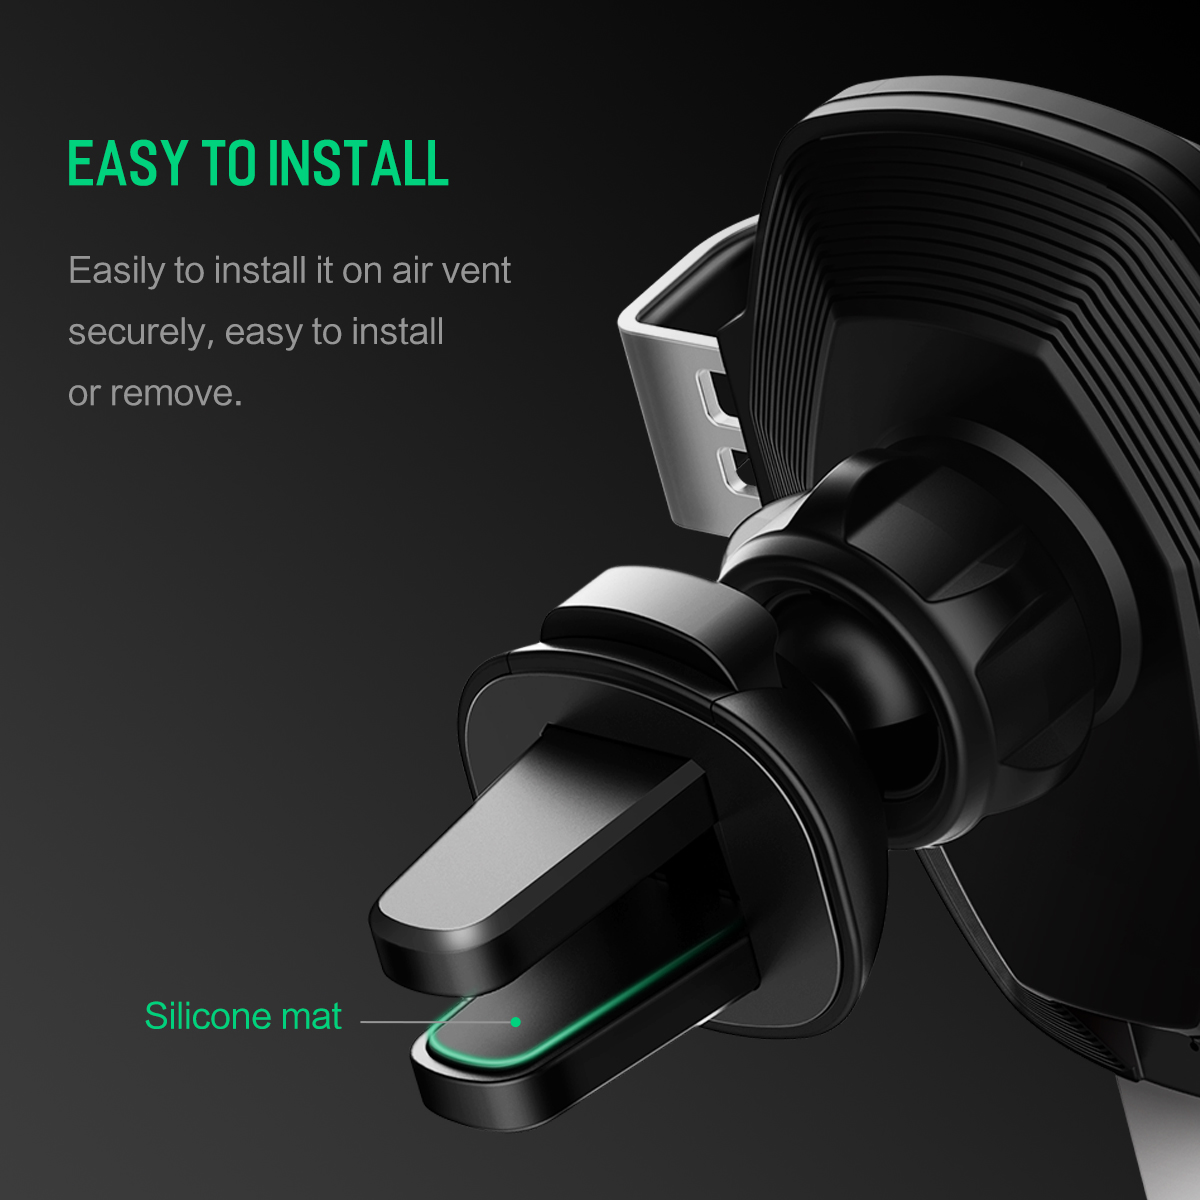 HTB15xcQKeOSBuNjy0Fdq6zDnVXaC - 10W QI Wireless Car Charger Gravity Holder , ROCK for iPhone X 8 Plus Samsung Galaxy S8 S7 Note 8 Quick Charge Charging Stand